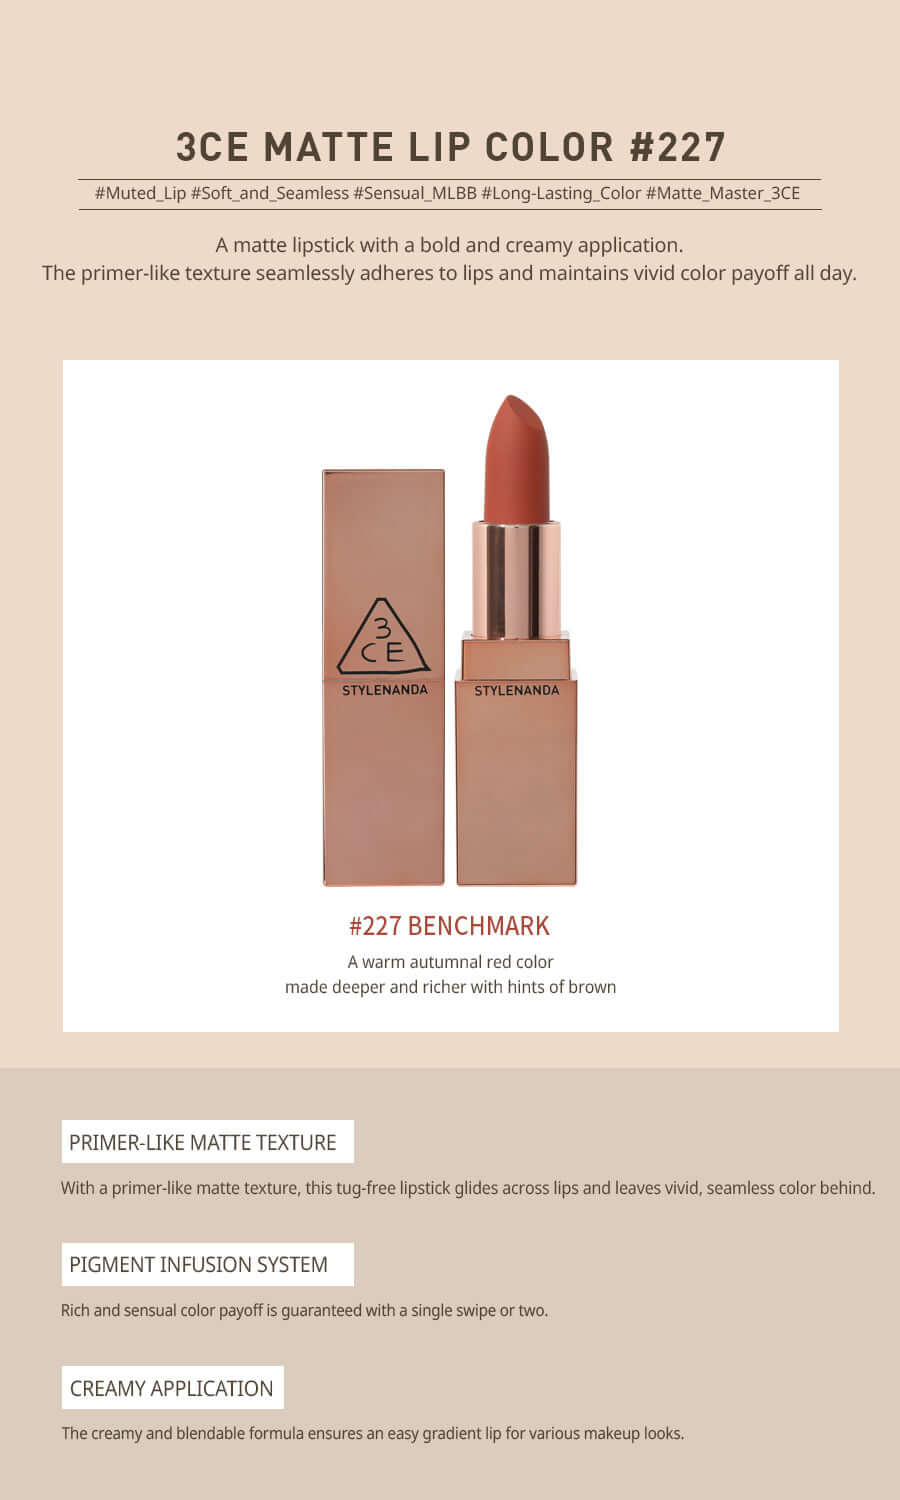 3CE Matte Lip Color #227 Benchmark